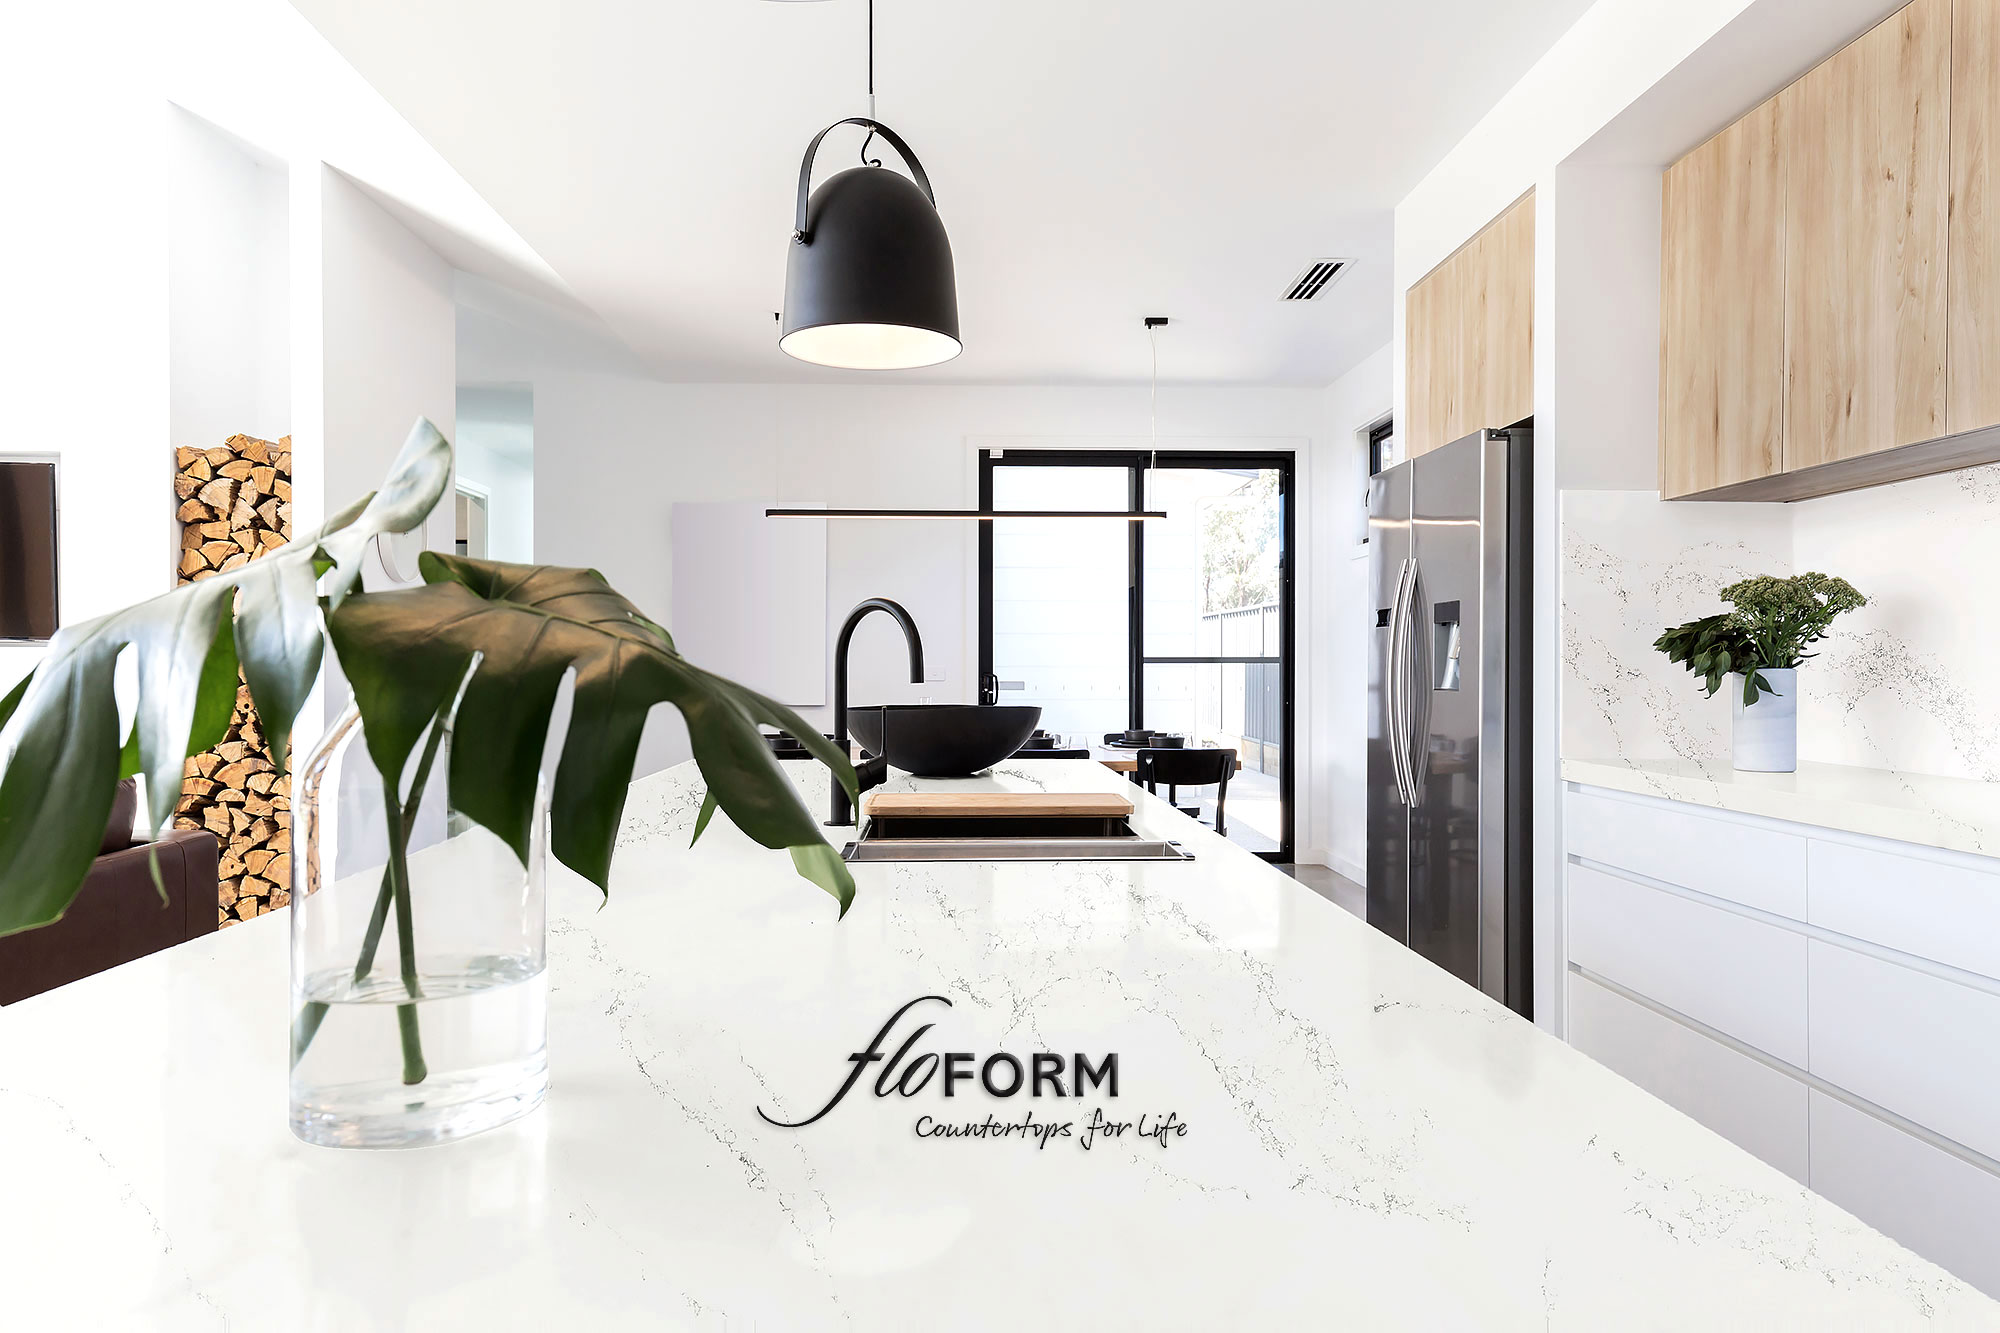 The Definitive Guide To Getting A New Countertop Floform Countertops